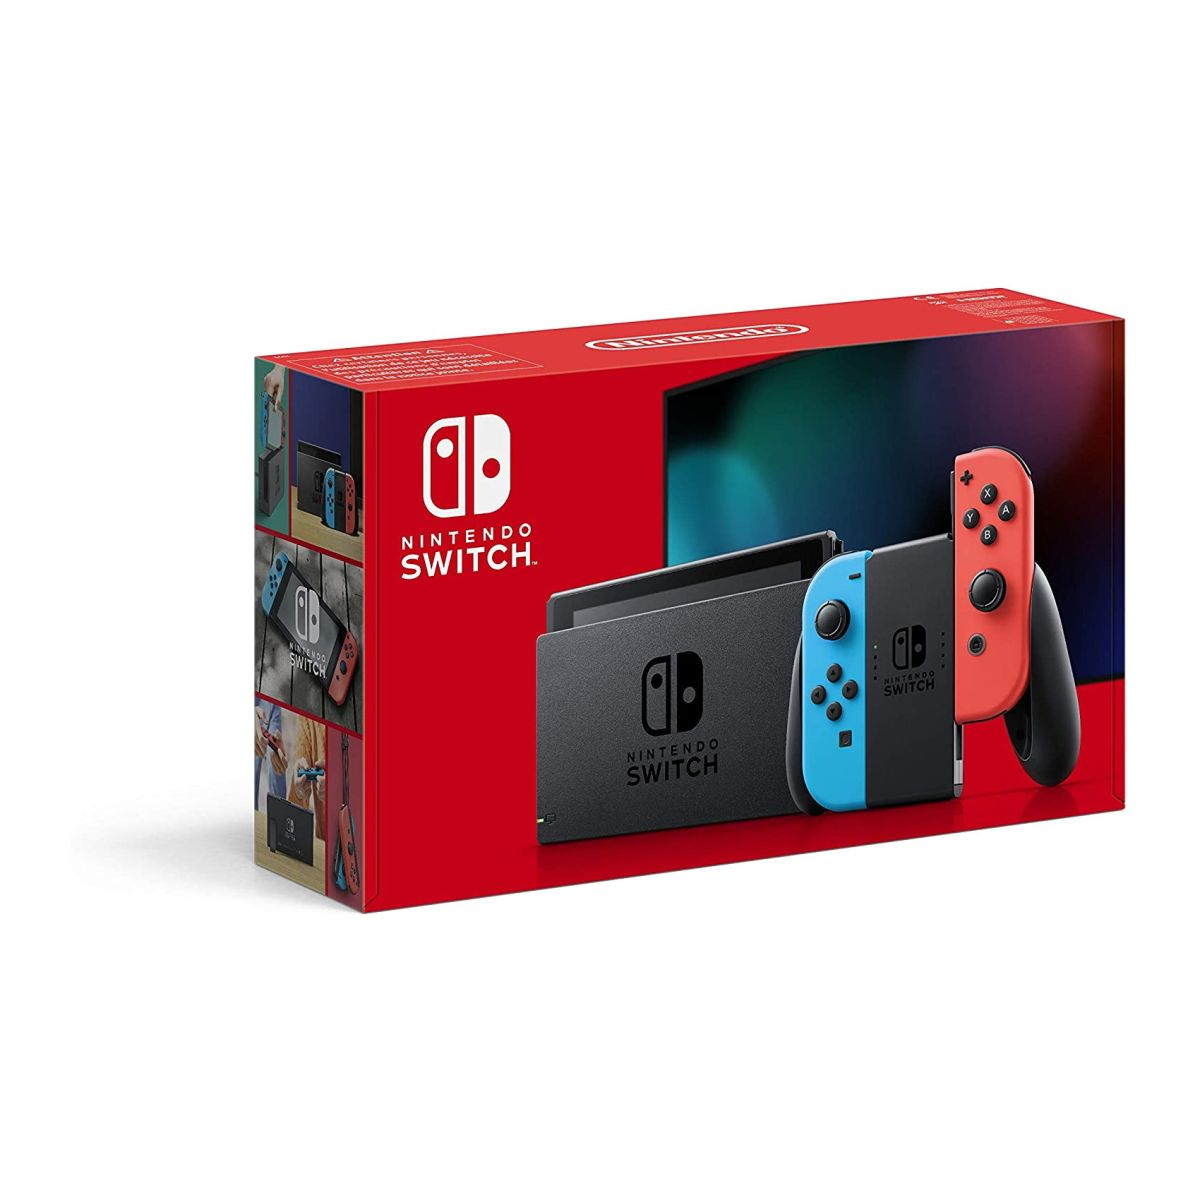 Nintendo Switch Deals Back In Stock At Gamestop And Very But Move Fast Techradar